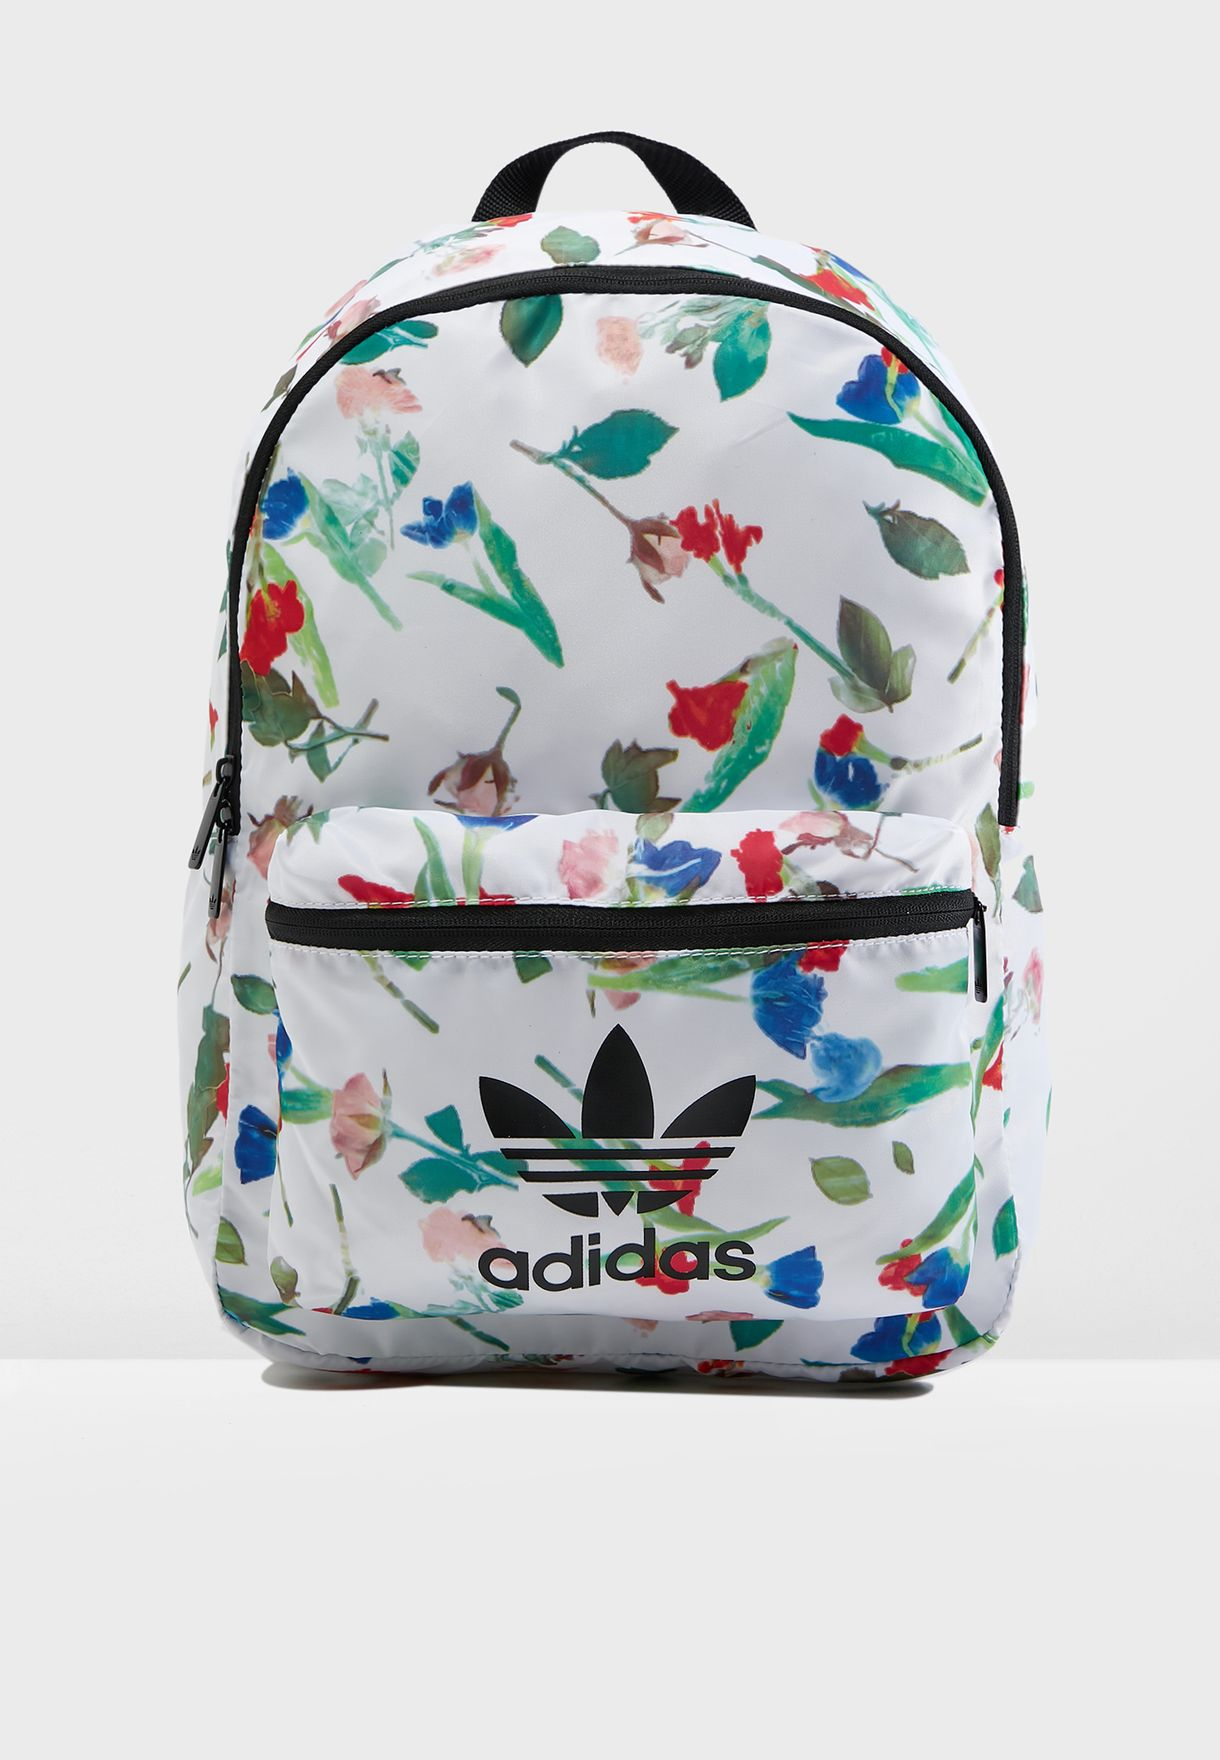 3b8406fdd13e7 Shop adidas Originals multicolor Classic Backpack EI4762 for Women ...